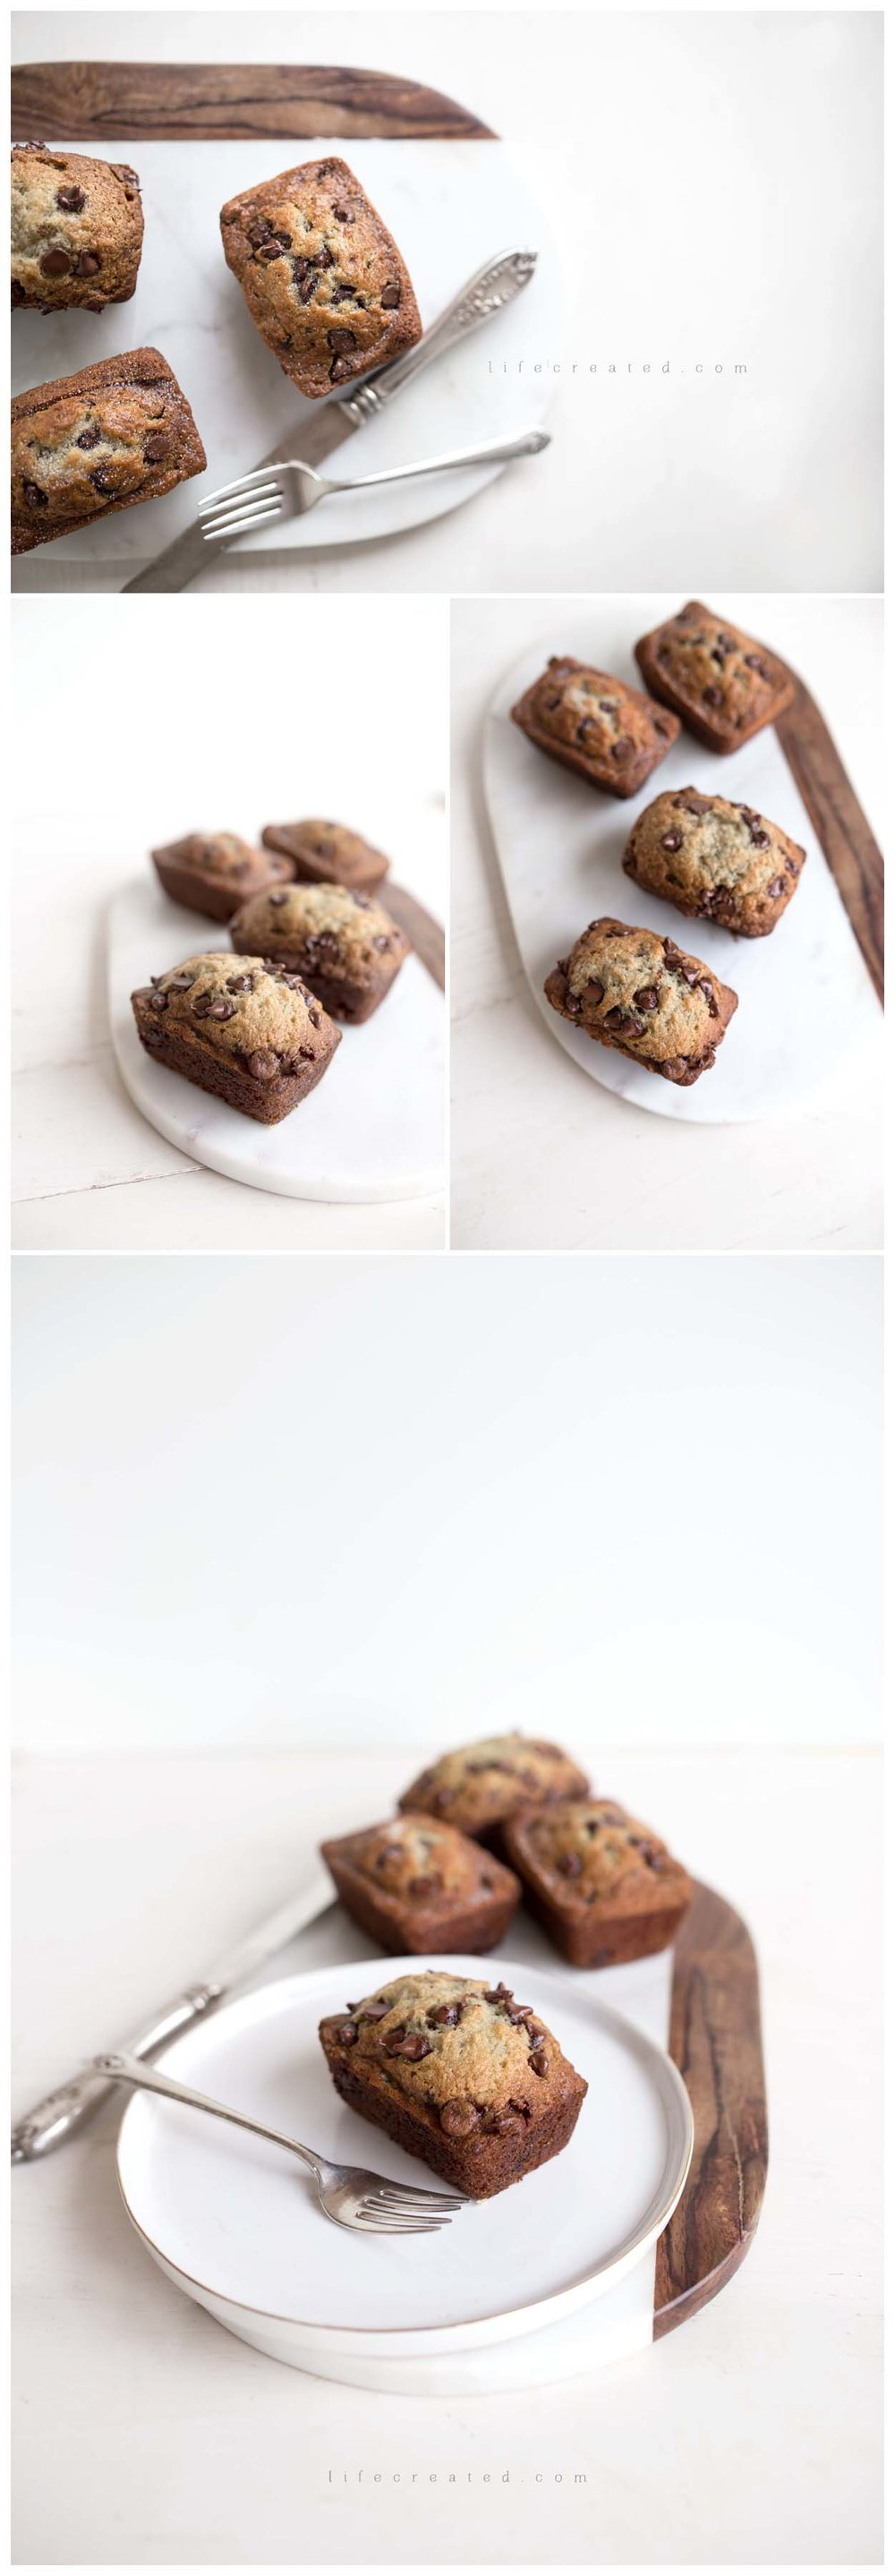 food photography, Chocolate chip banana bread